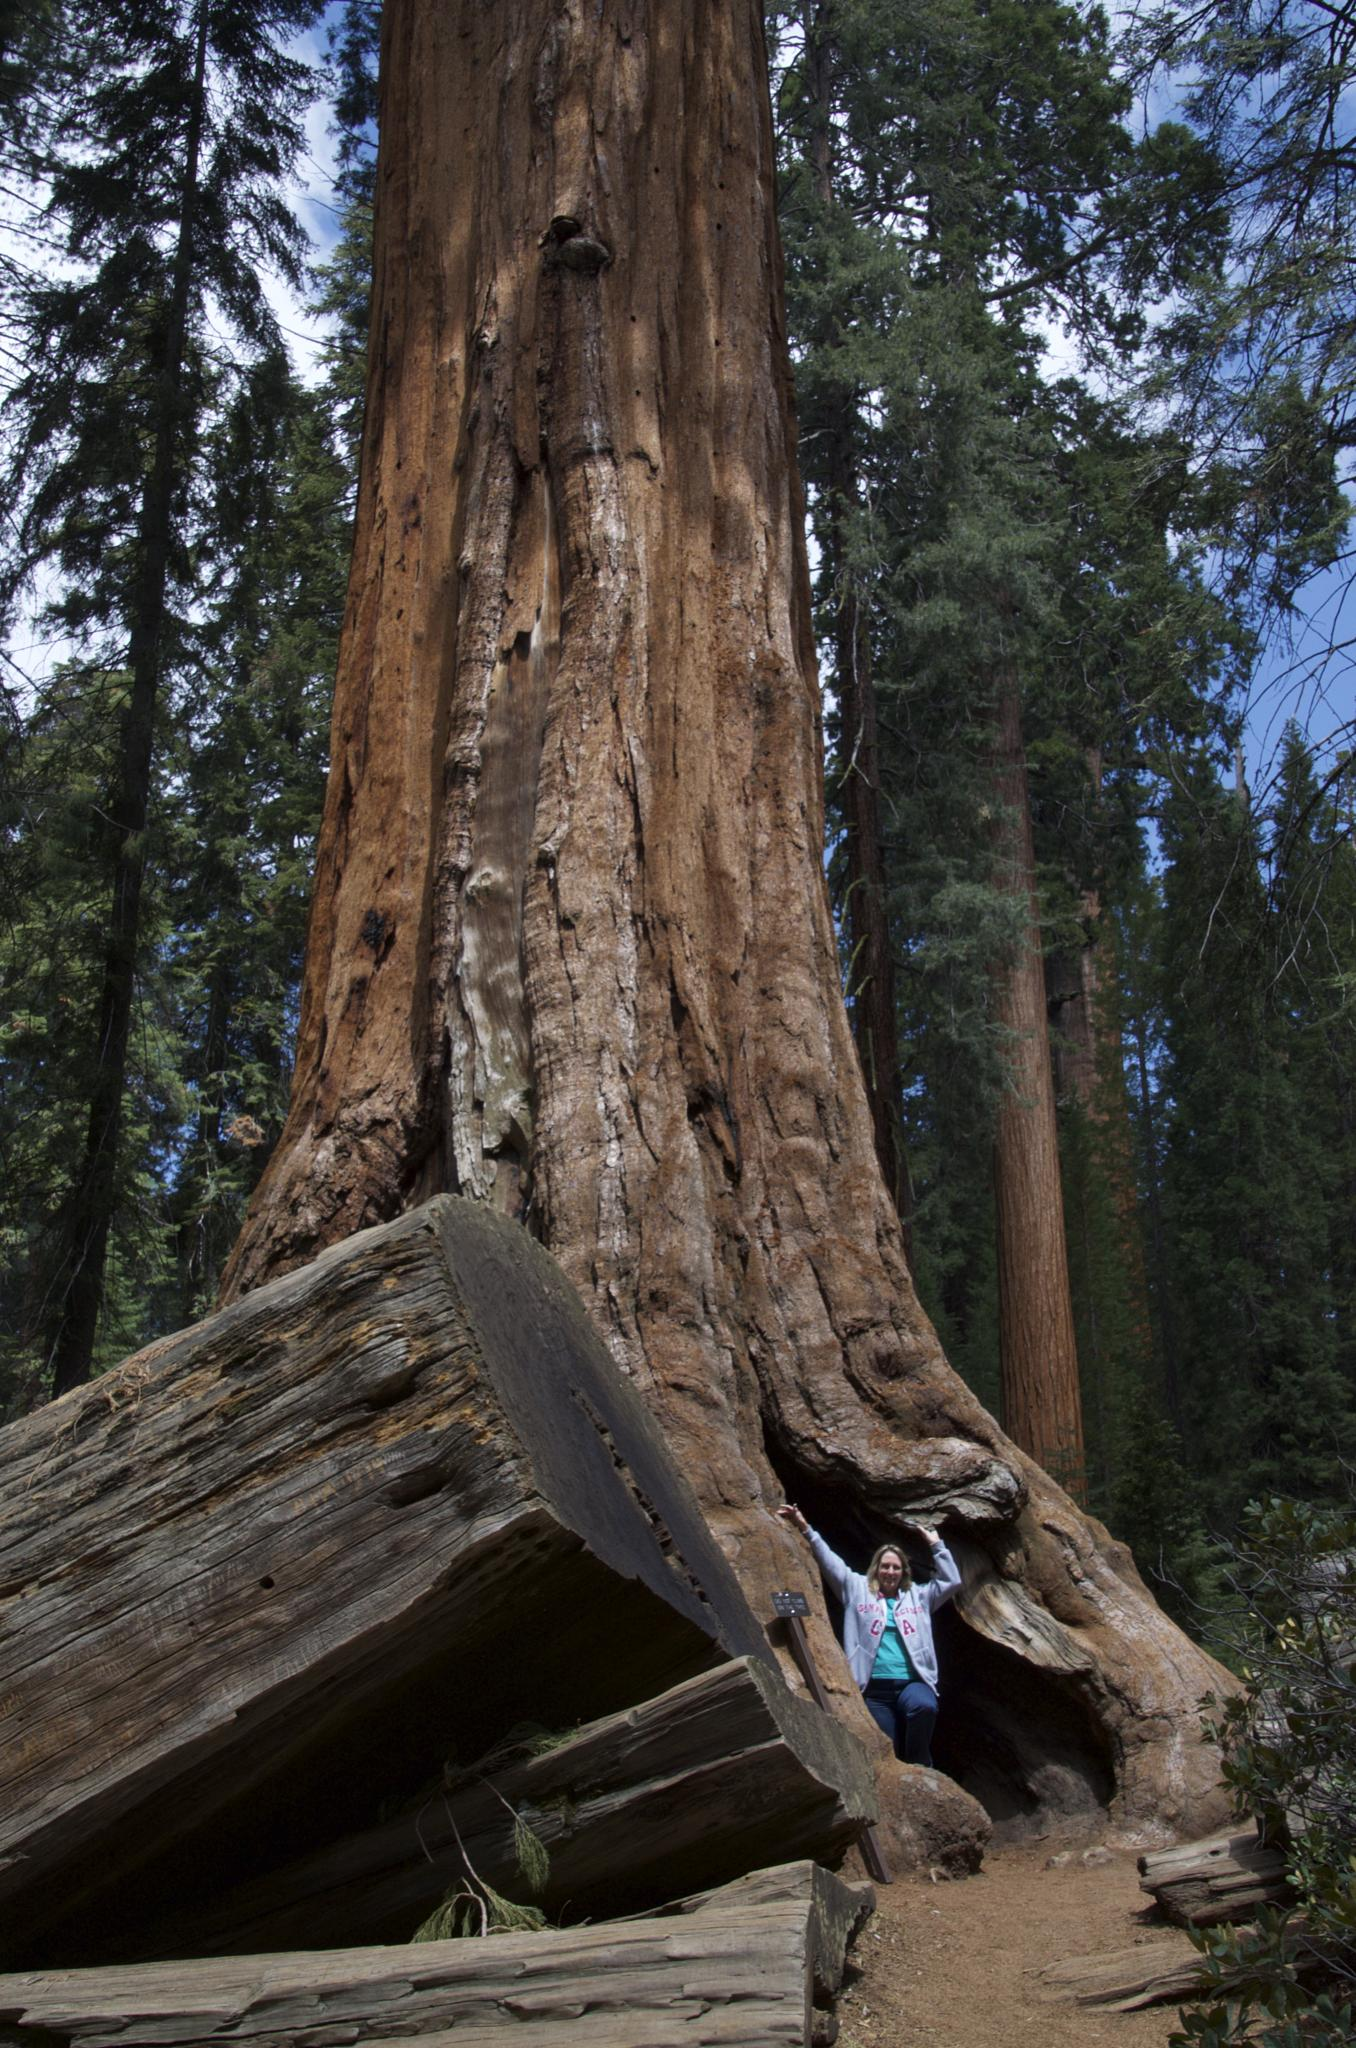 Giant Sequoia trees by Laurie Deakin